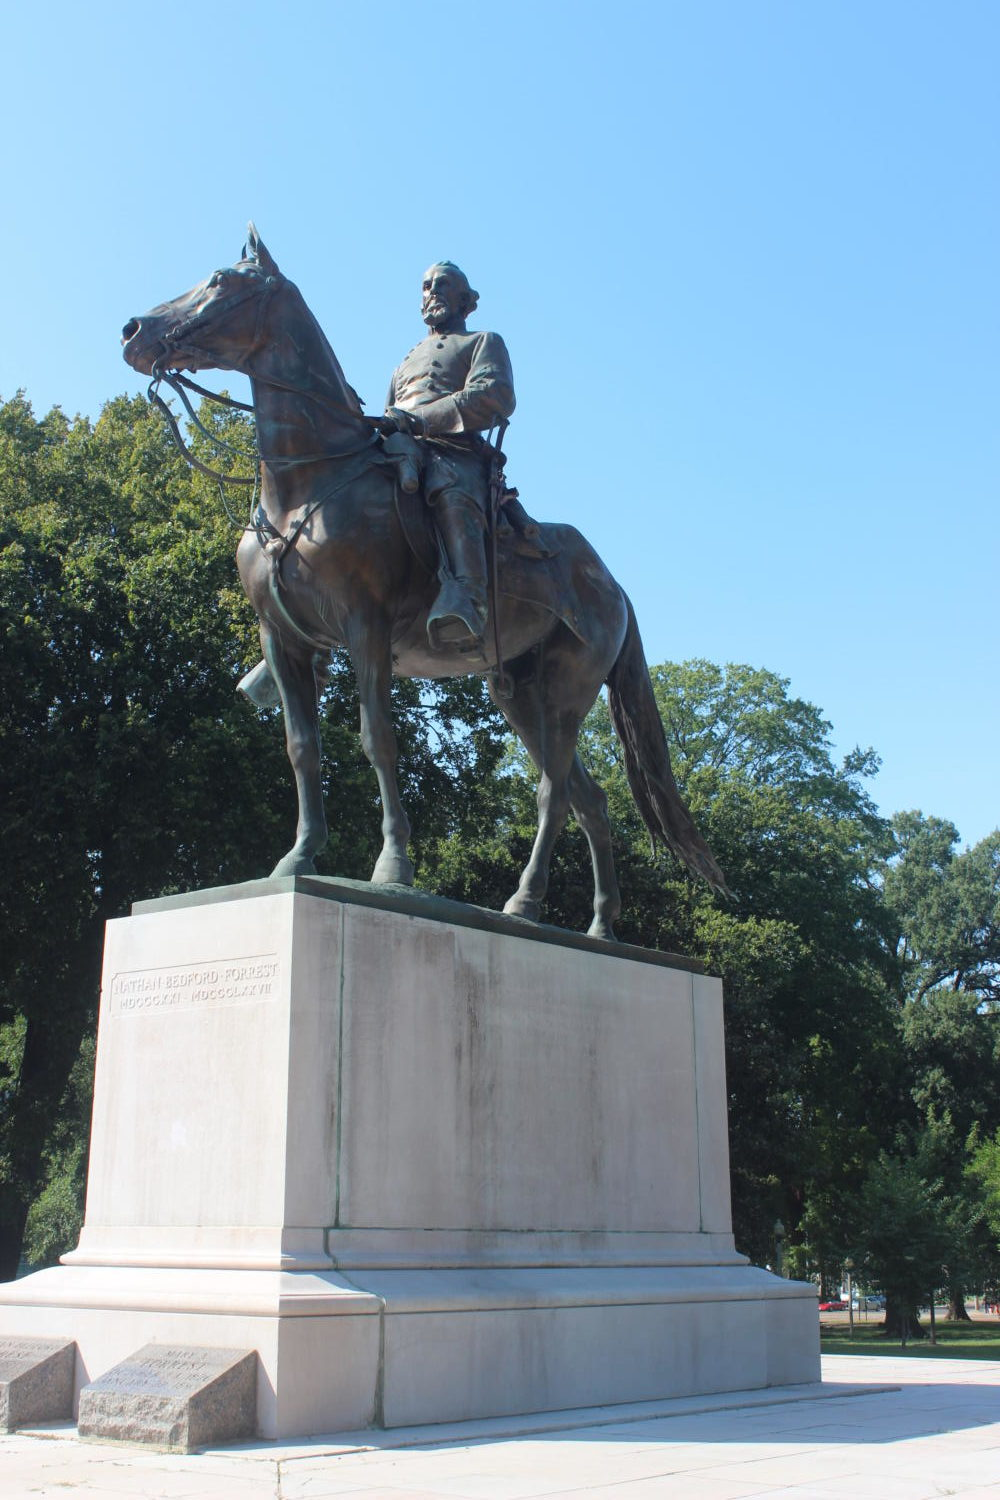 Nathan Bedford Forrest statue in the Health and Sciences Park.